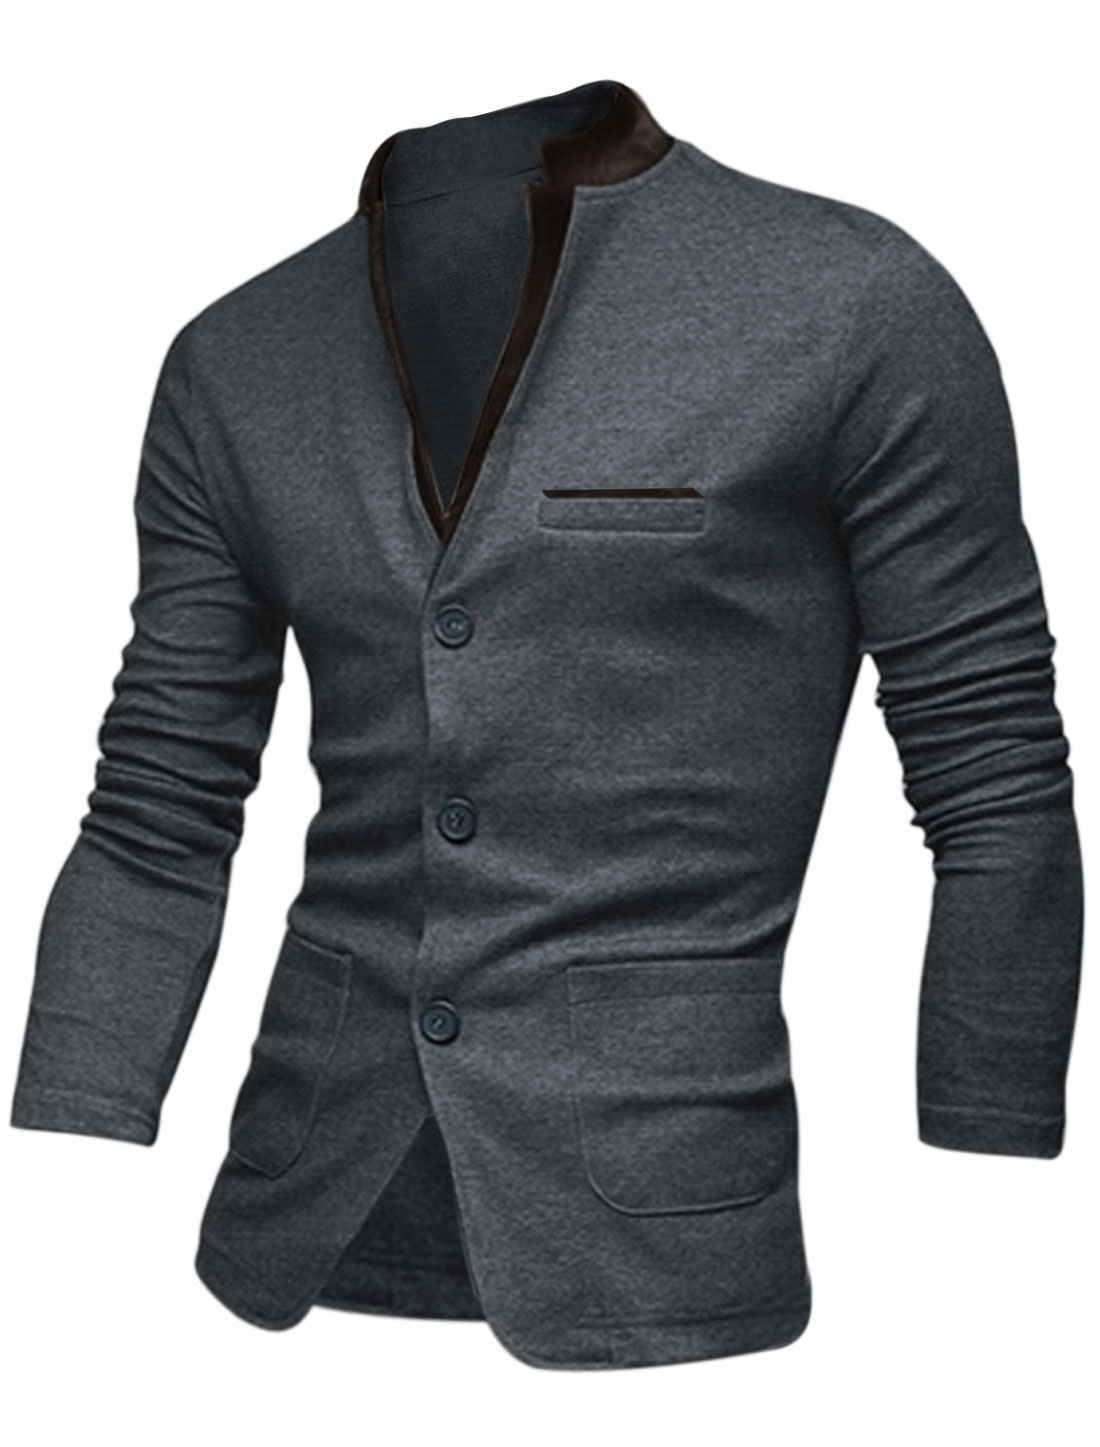 Men Notched Lapel Single Breasted Two Welt Pockets Front Casual Jacket Drak Gray M